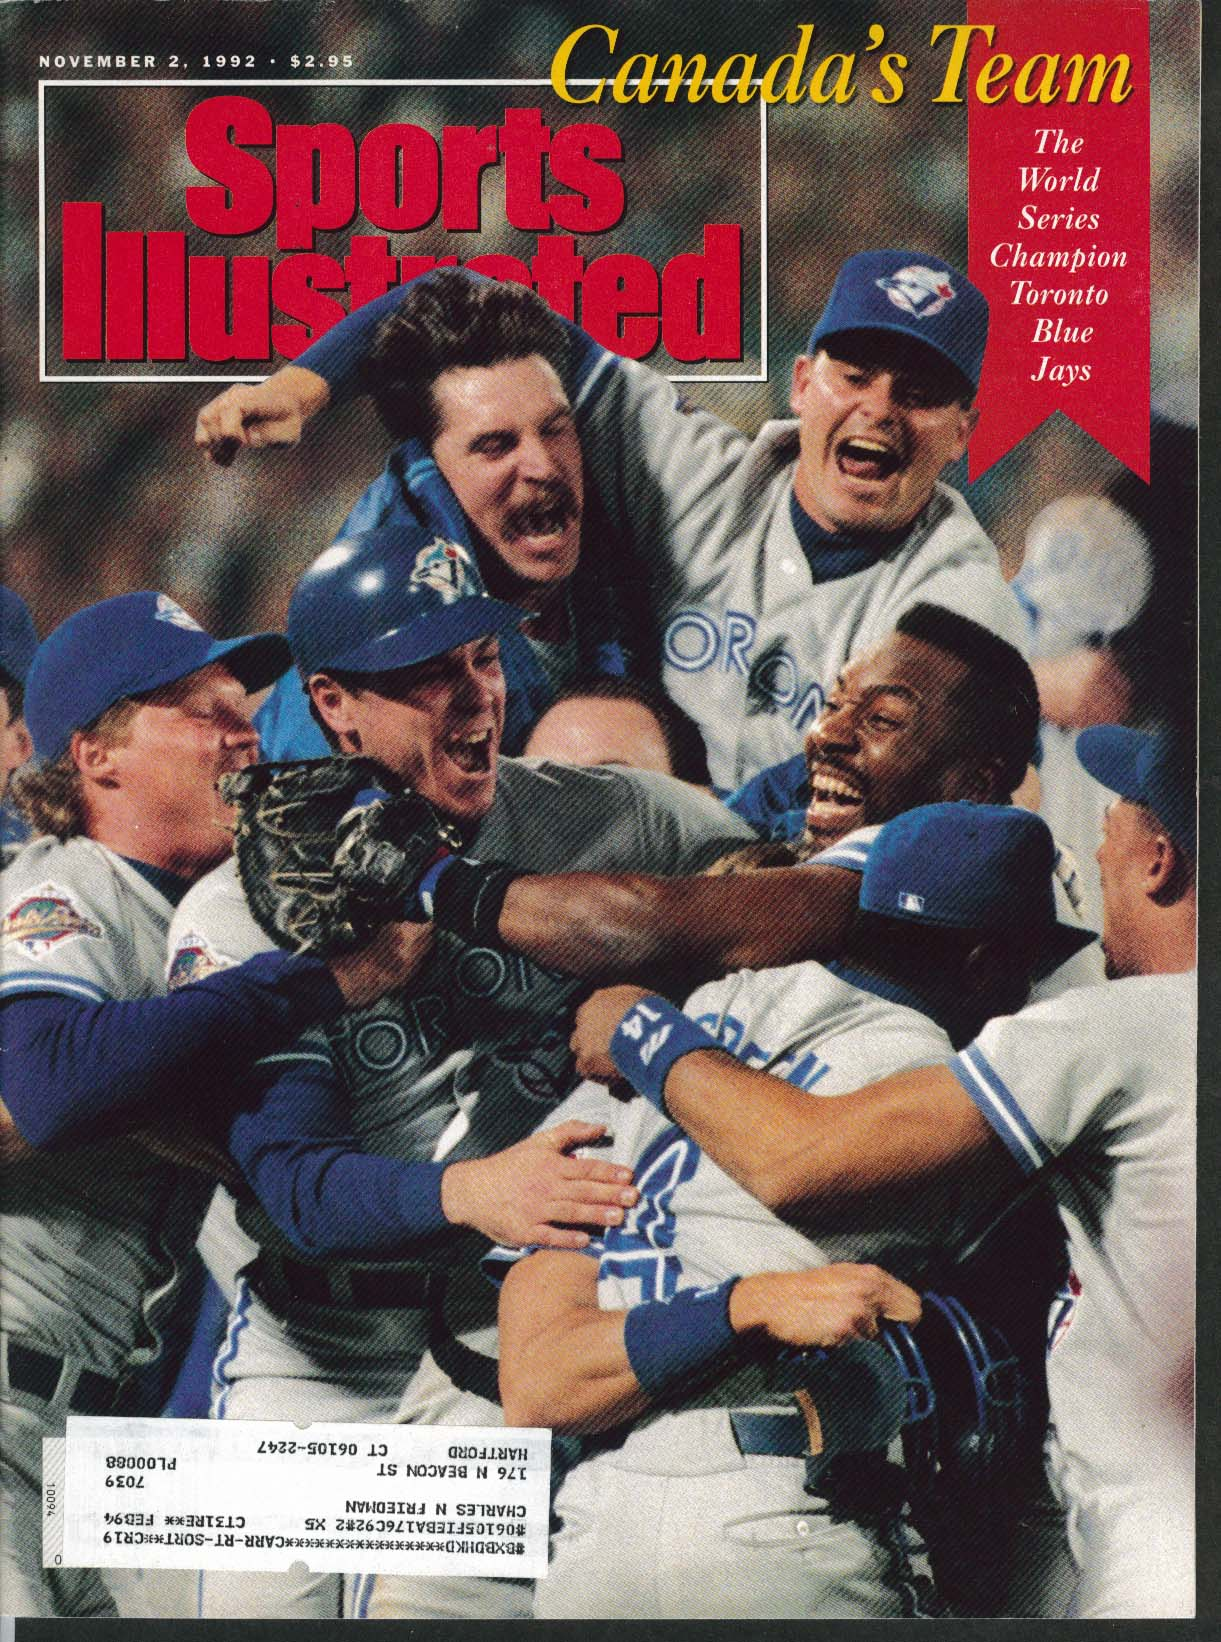 SPORTS ILLUSTRATED Dave Winfield George Benton Bill Walsh New England 11/2 1992